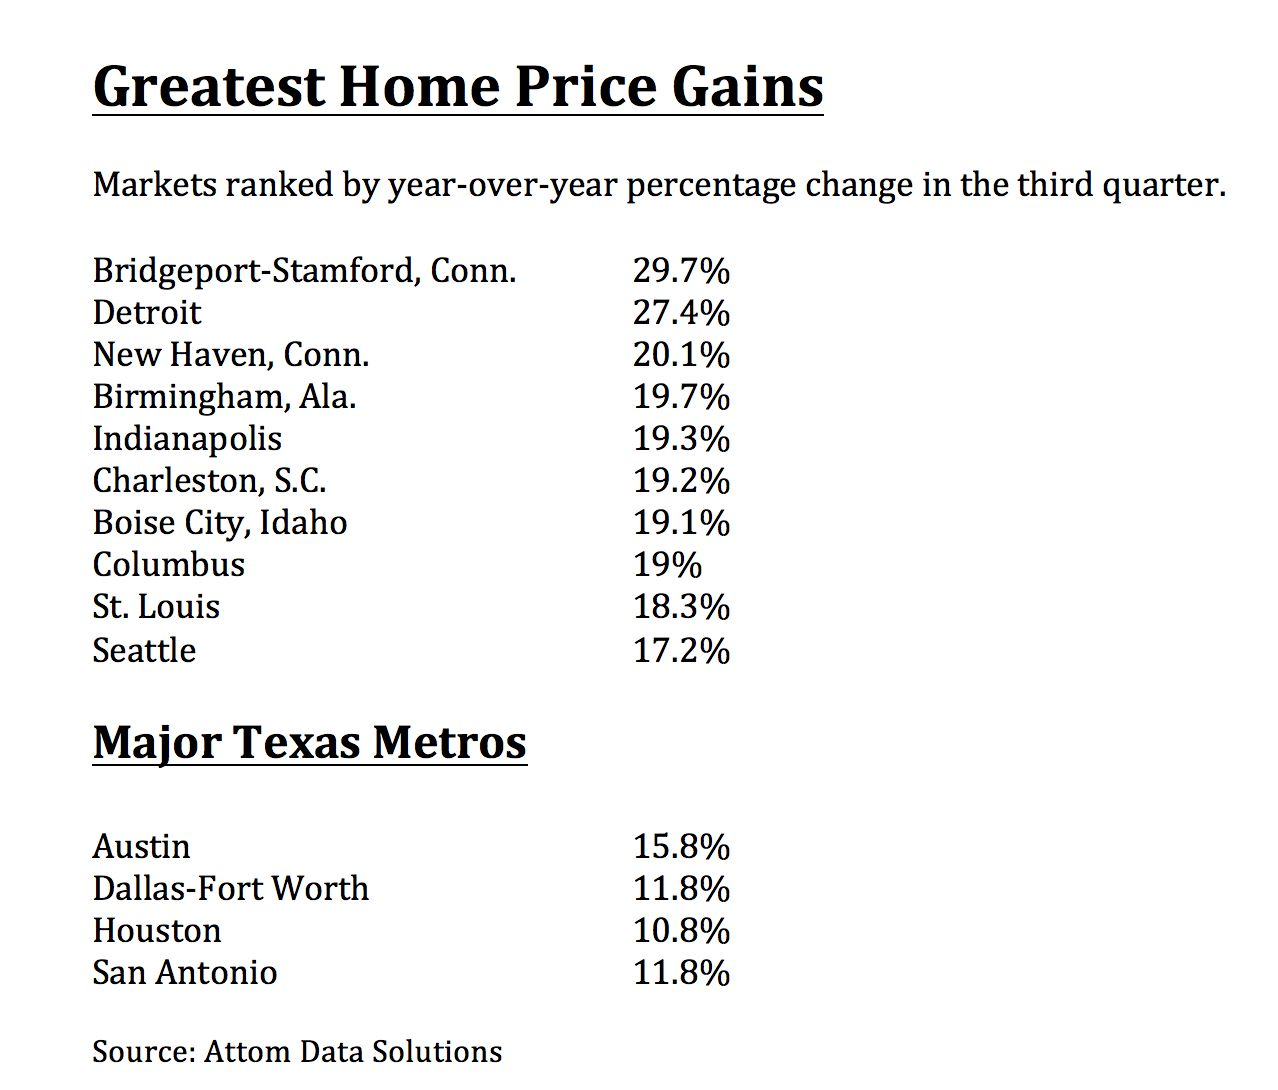 More than three quarters of U.S. metro areas saw double-digit percentage home price gains in the third quarter.